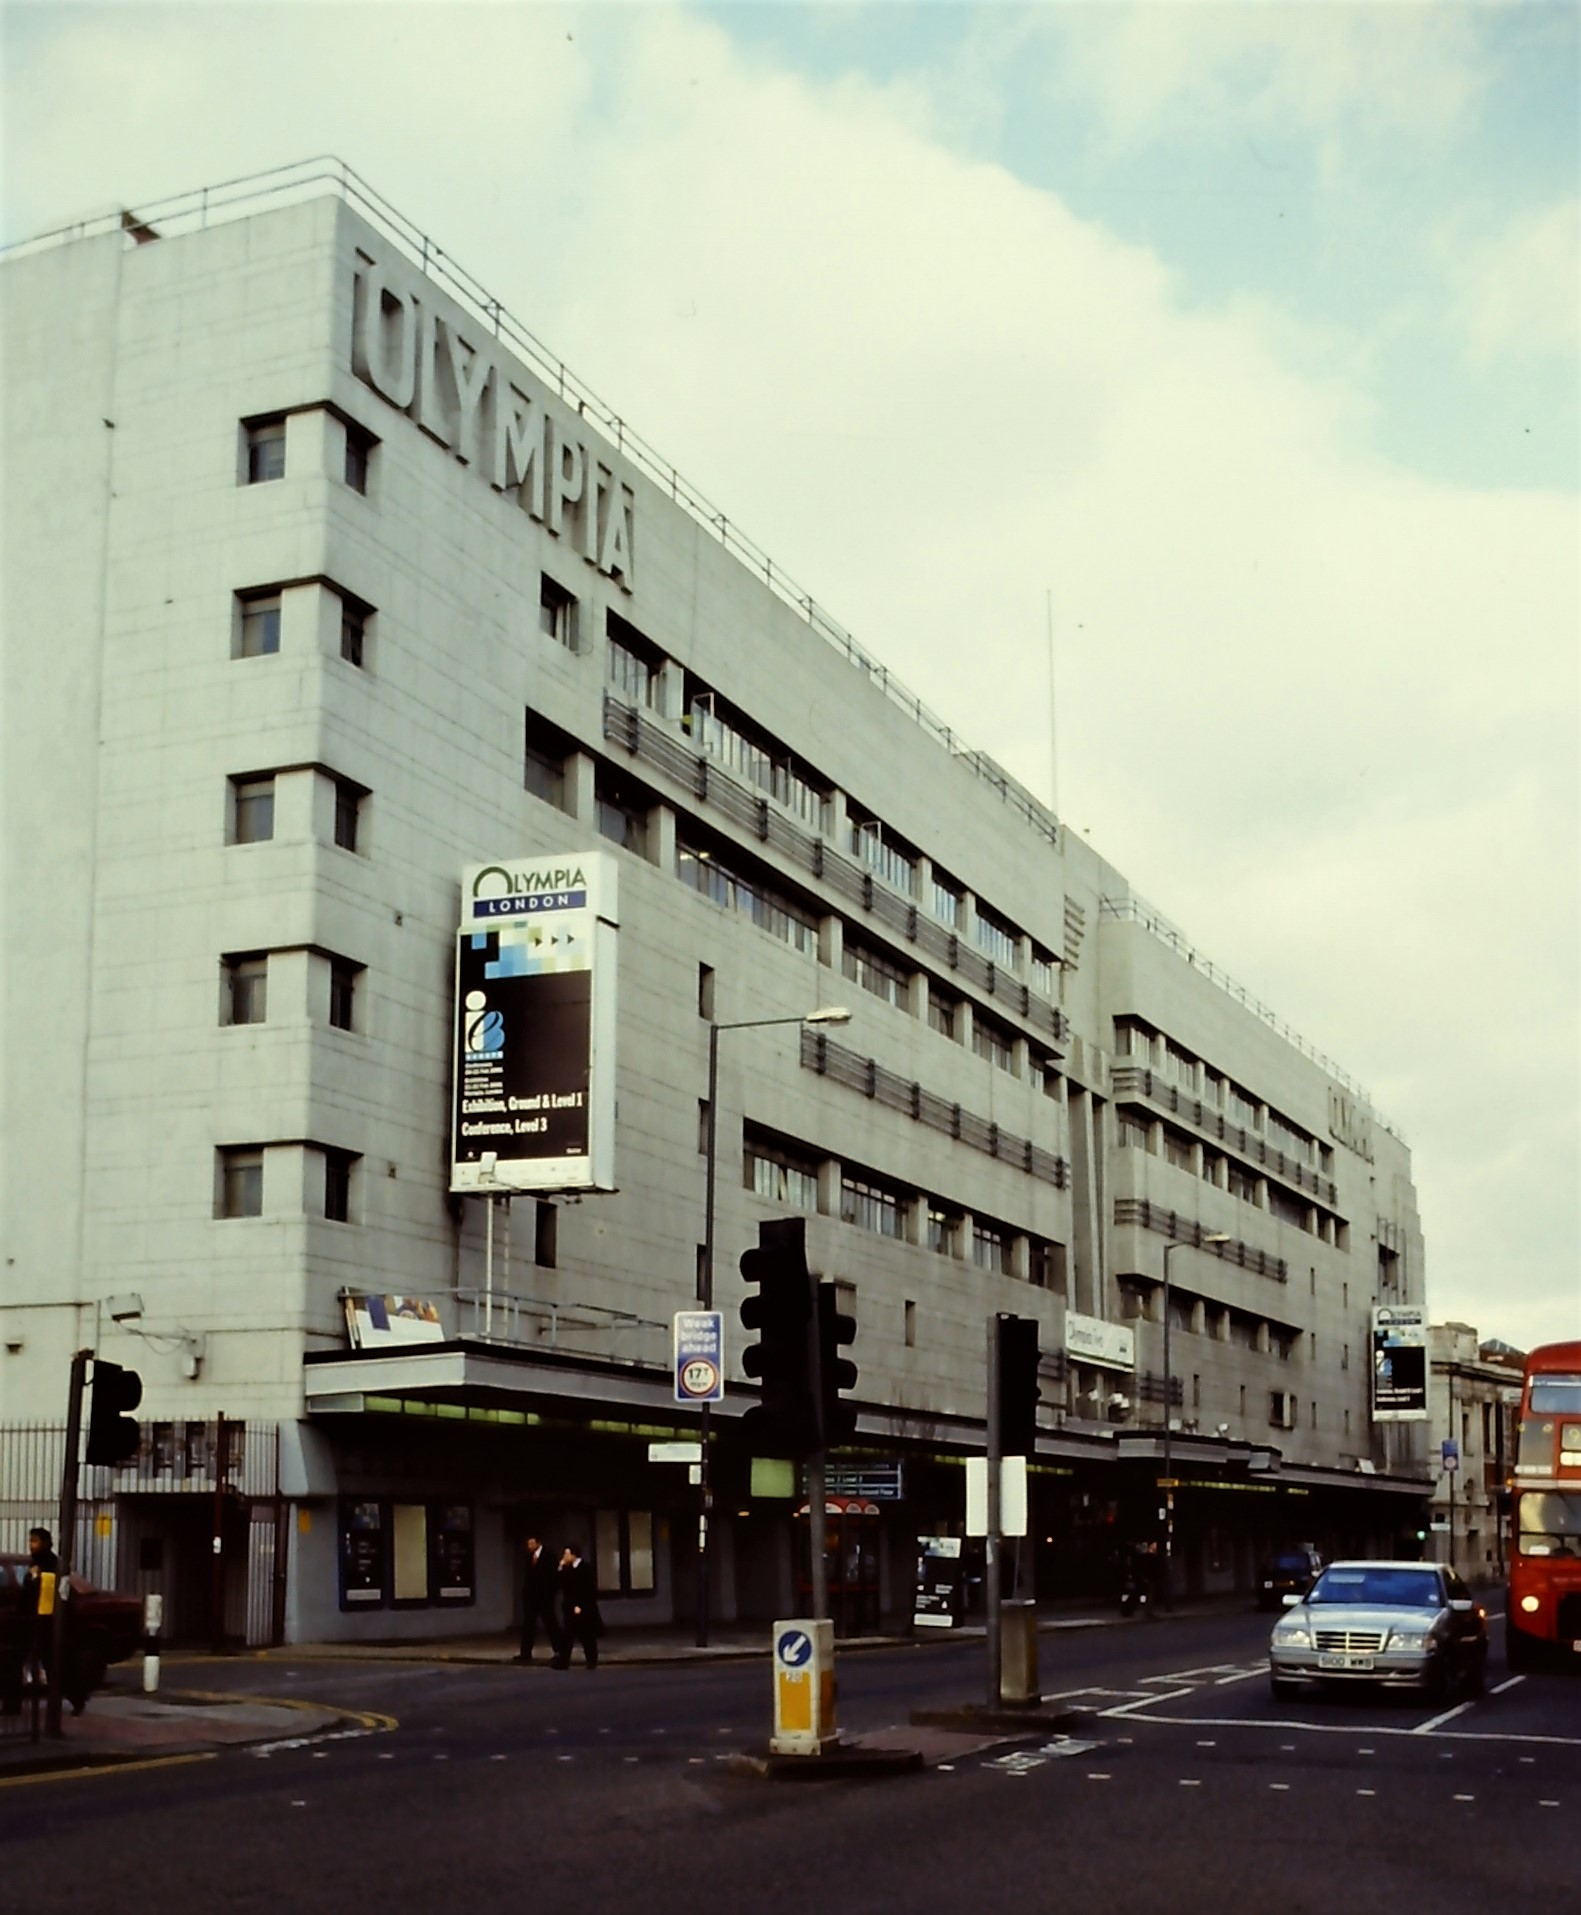 Olympia Central Hall façade on Hammersmith Road, 2000